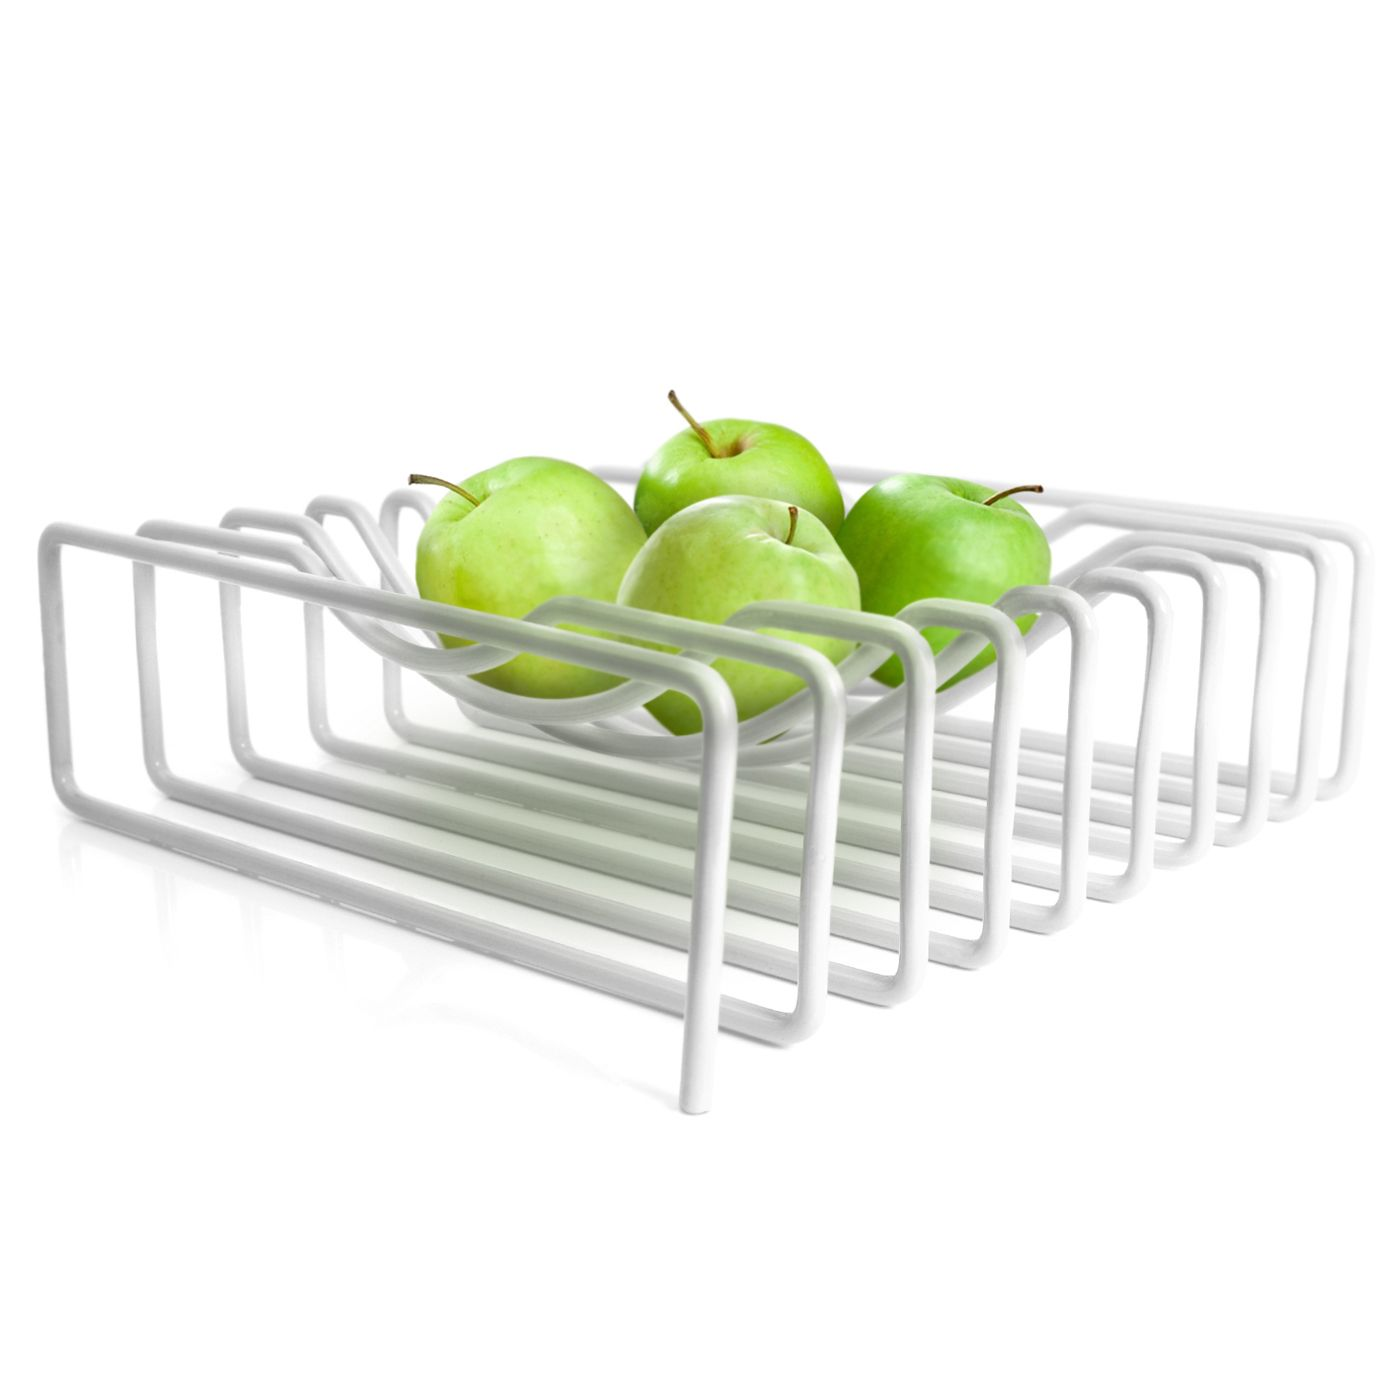 Wire Fruit Bowls Wire Fruit Bowl In 2019 Fruit Baskets Modern Fruit Bowl Fruit